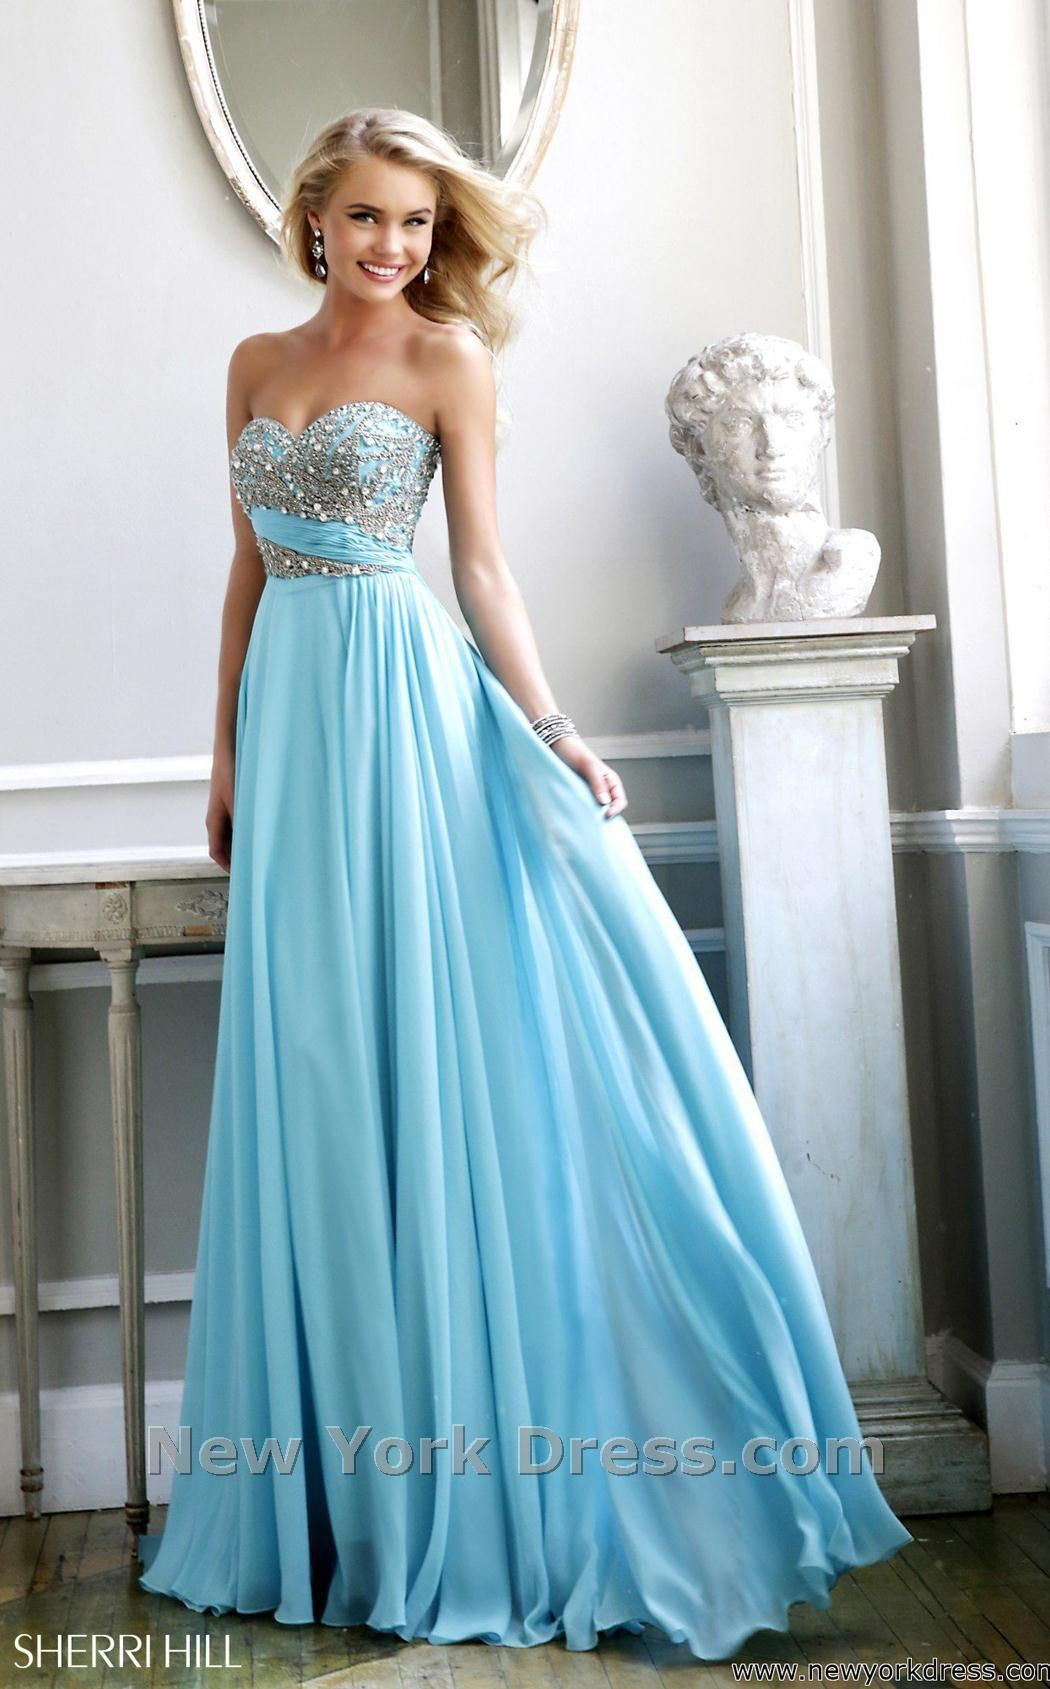 Sherri Hill Dress 3914 | Prom, Prom ideas and Clothes